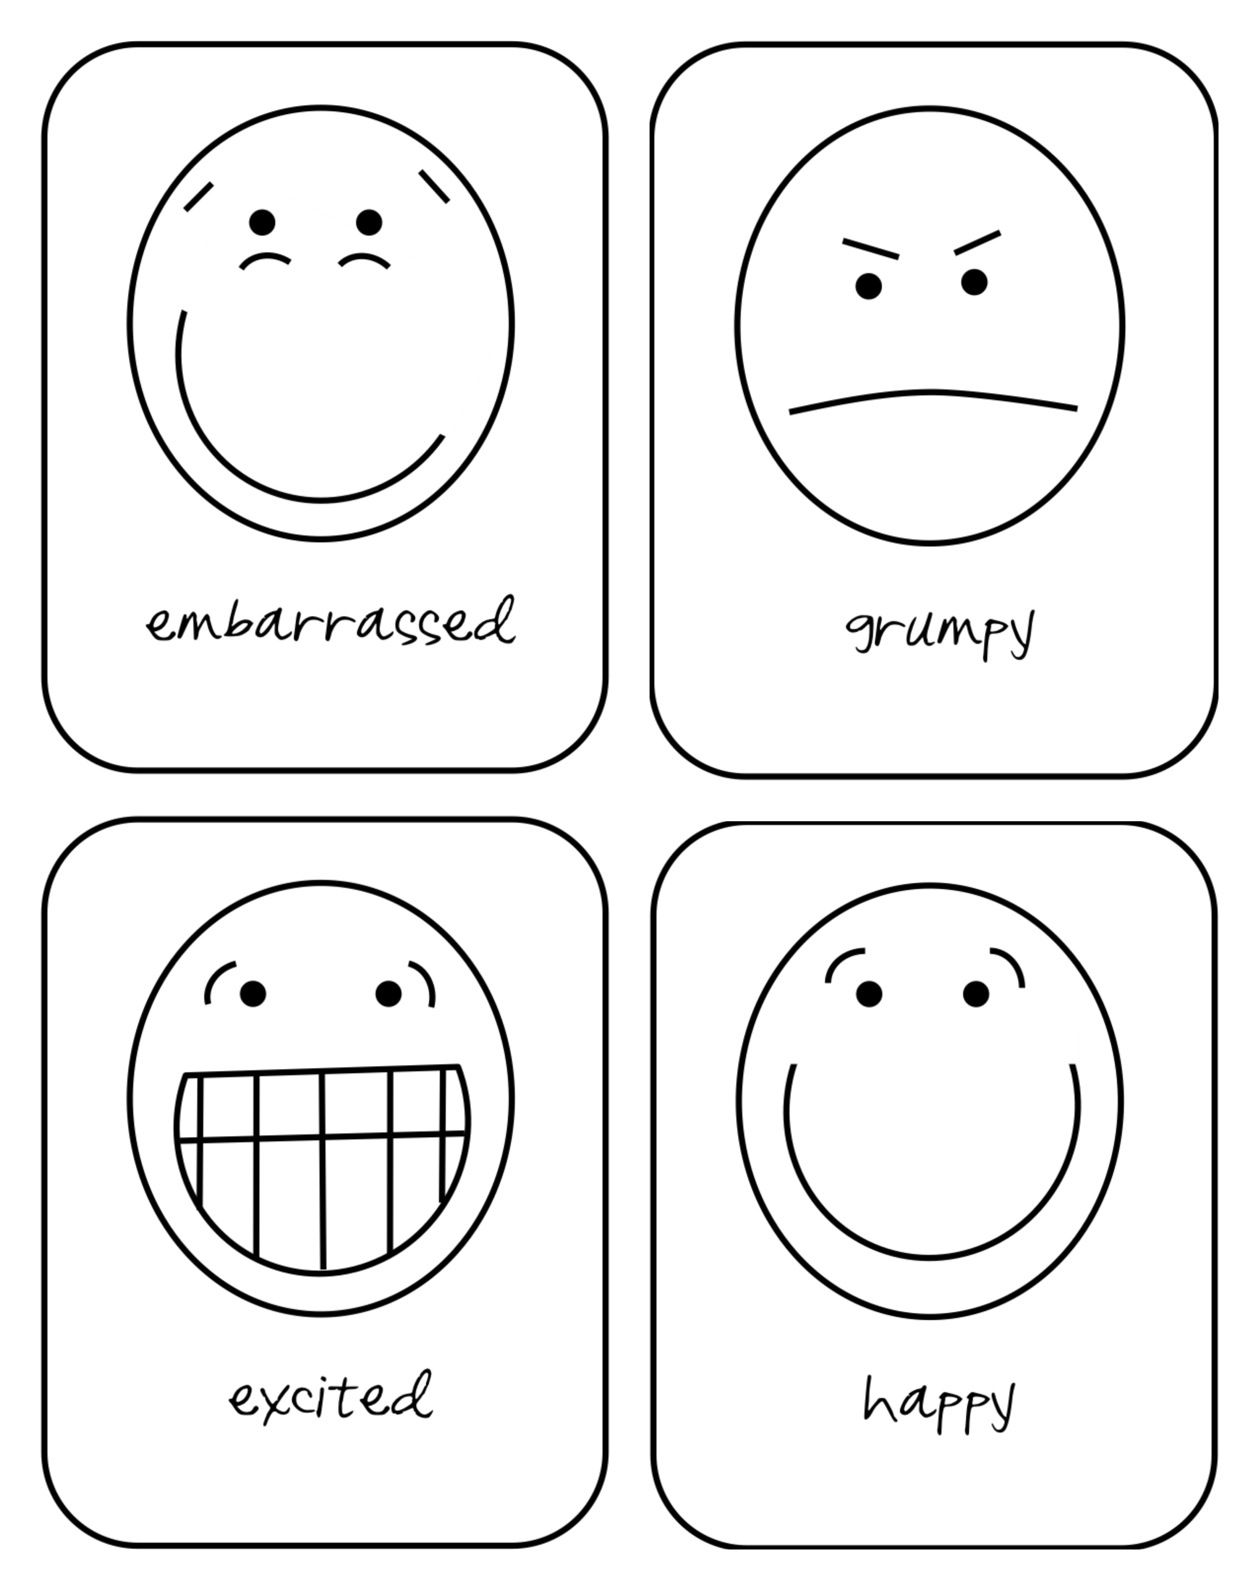 picture regarding Emotion Flashcards Printable named Totally free printable sensation flash playing cards for your little one HOPES